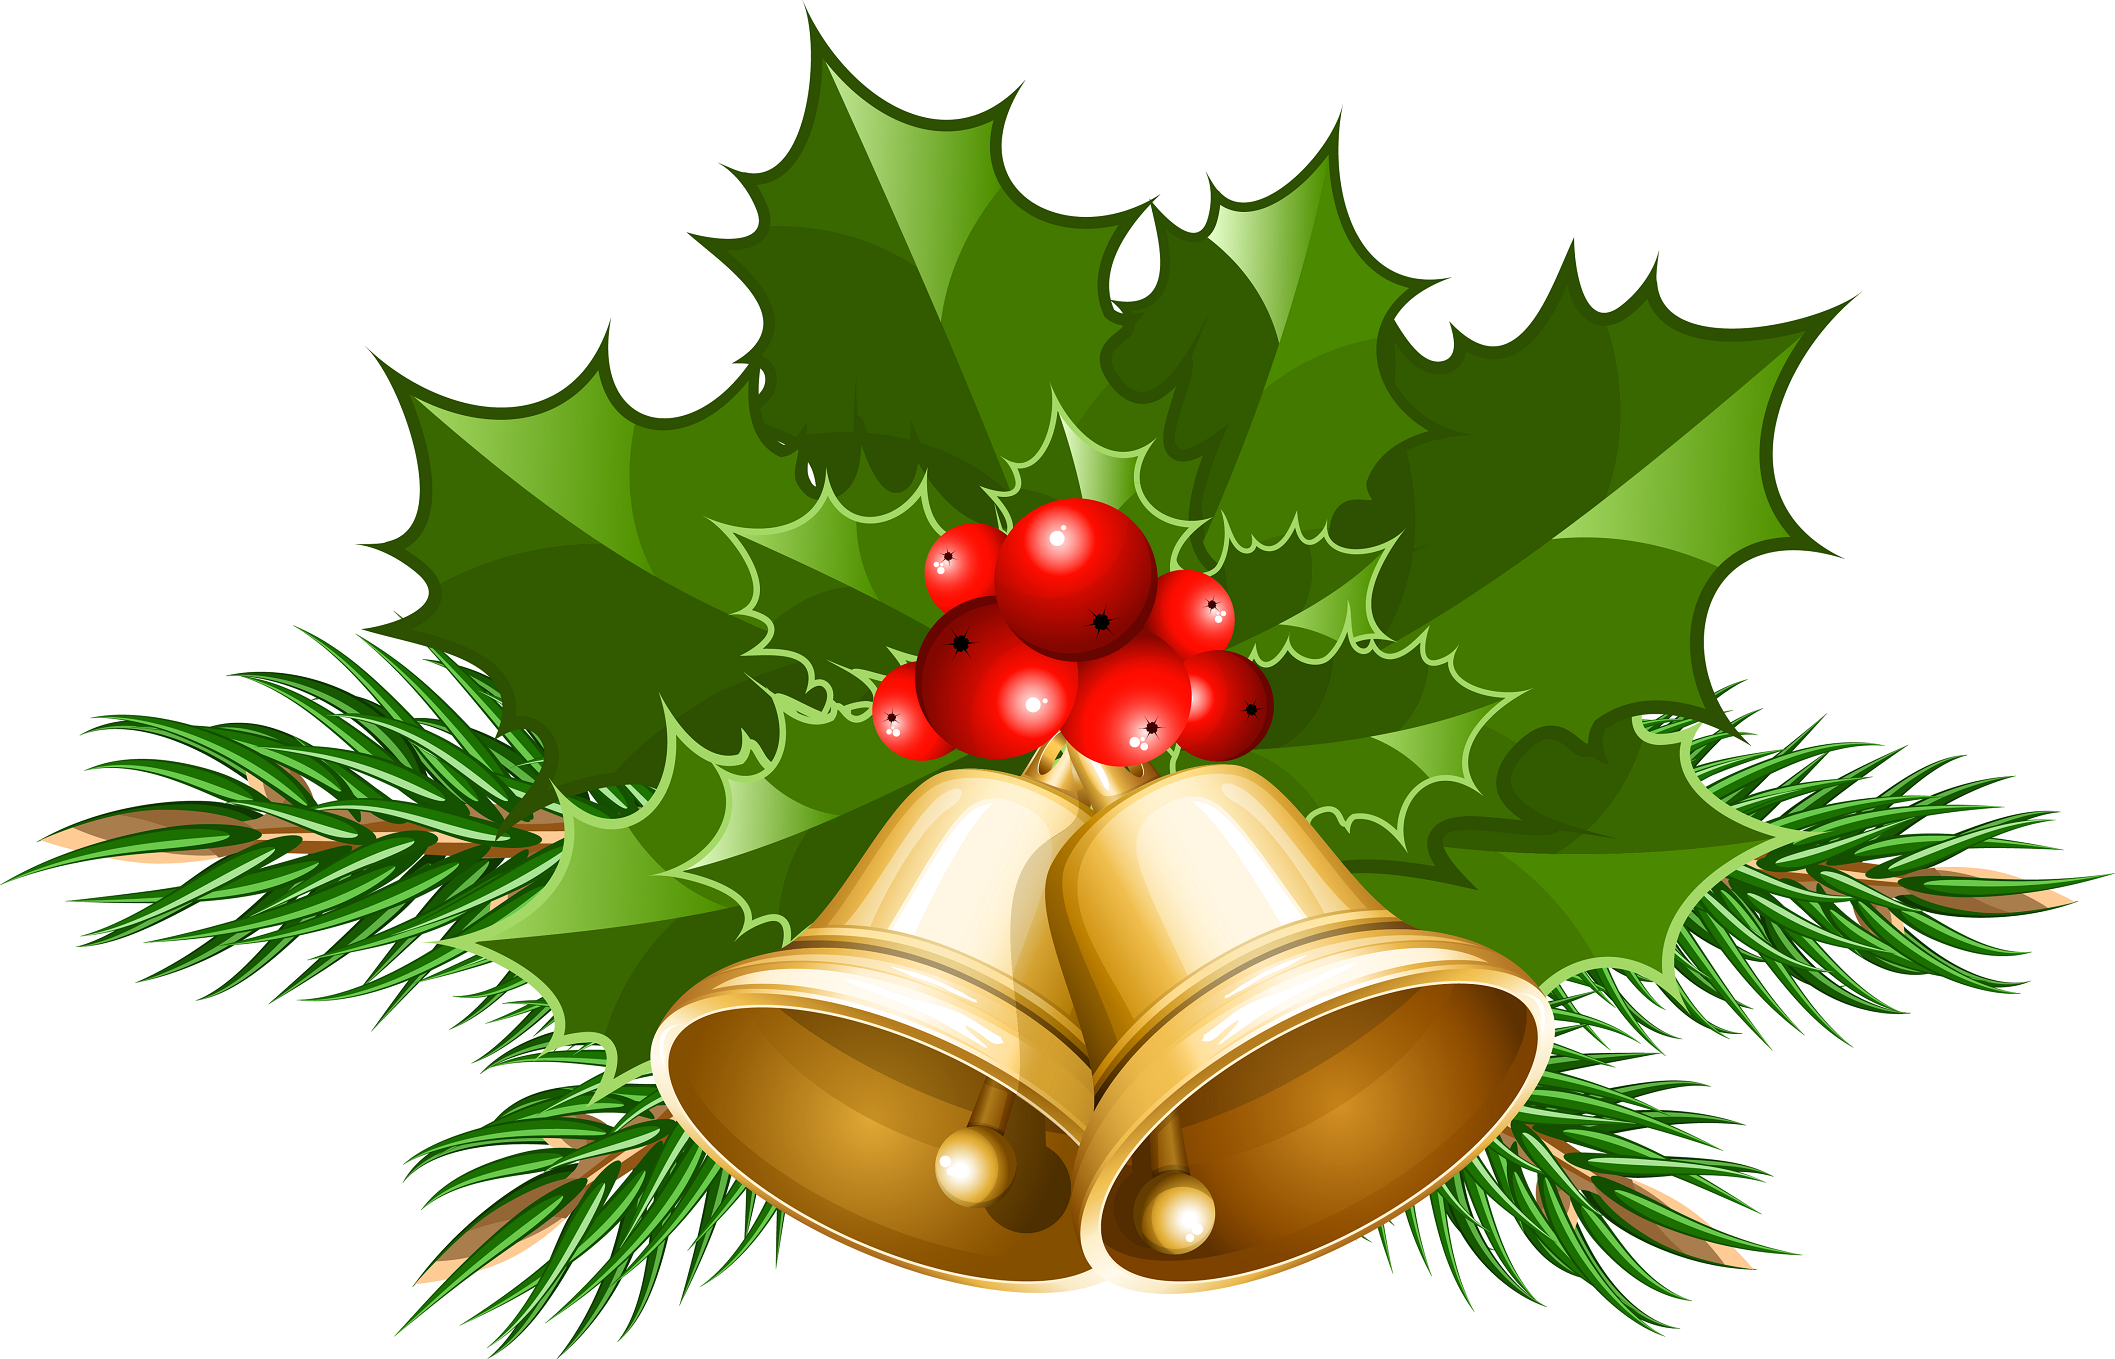 Christmas bells with holly clip art large | Christmas clipart, Christmas  images free, Christmas images